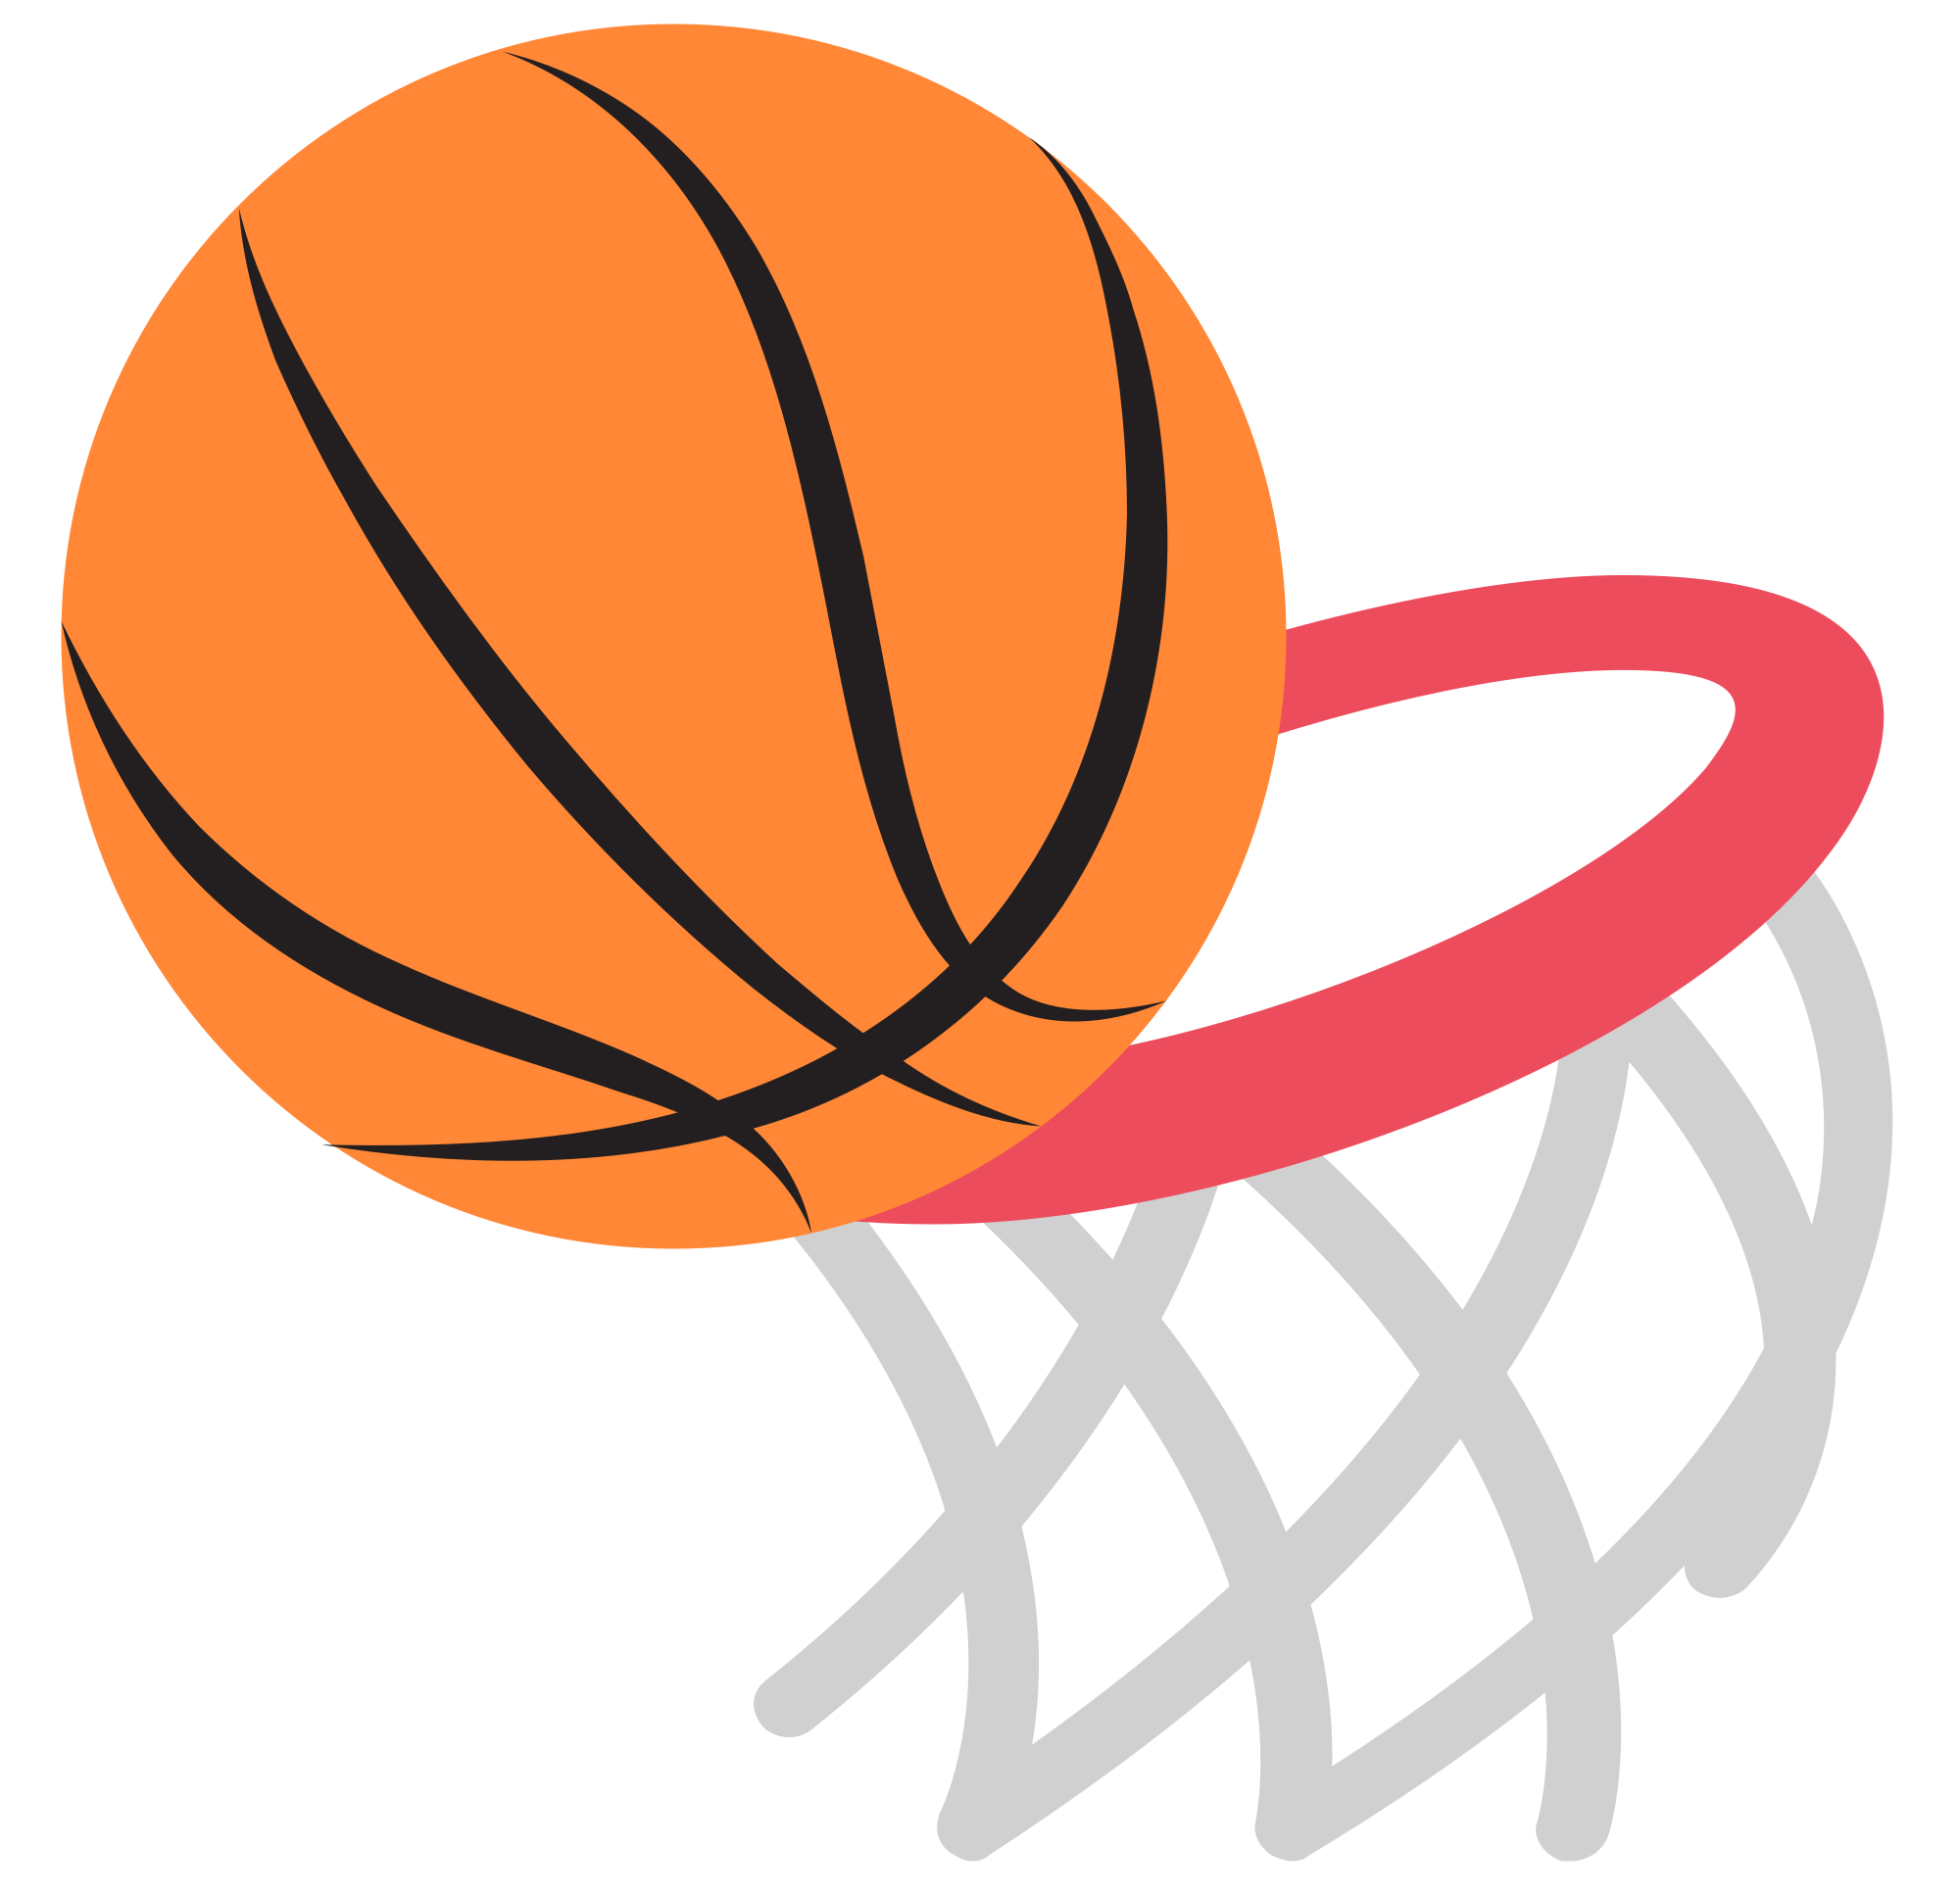 Basketball hoop with ball clipart vector free download The Basketball Drawer – Focused on the players, focused on the basket vector free download